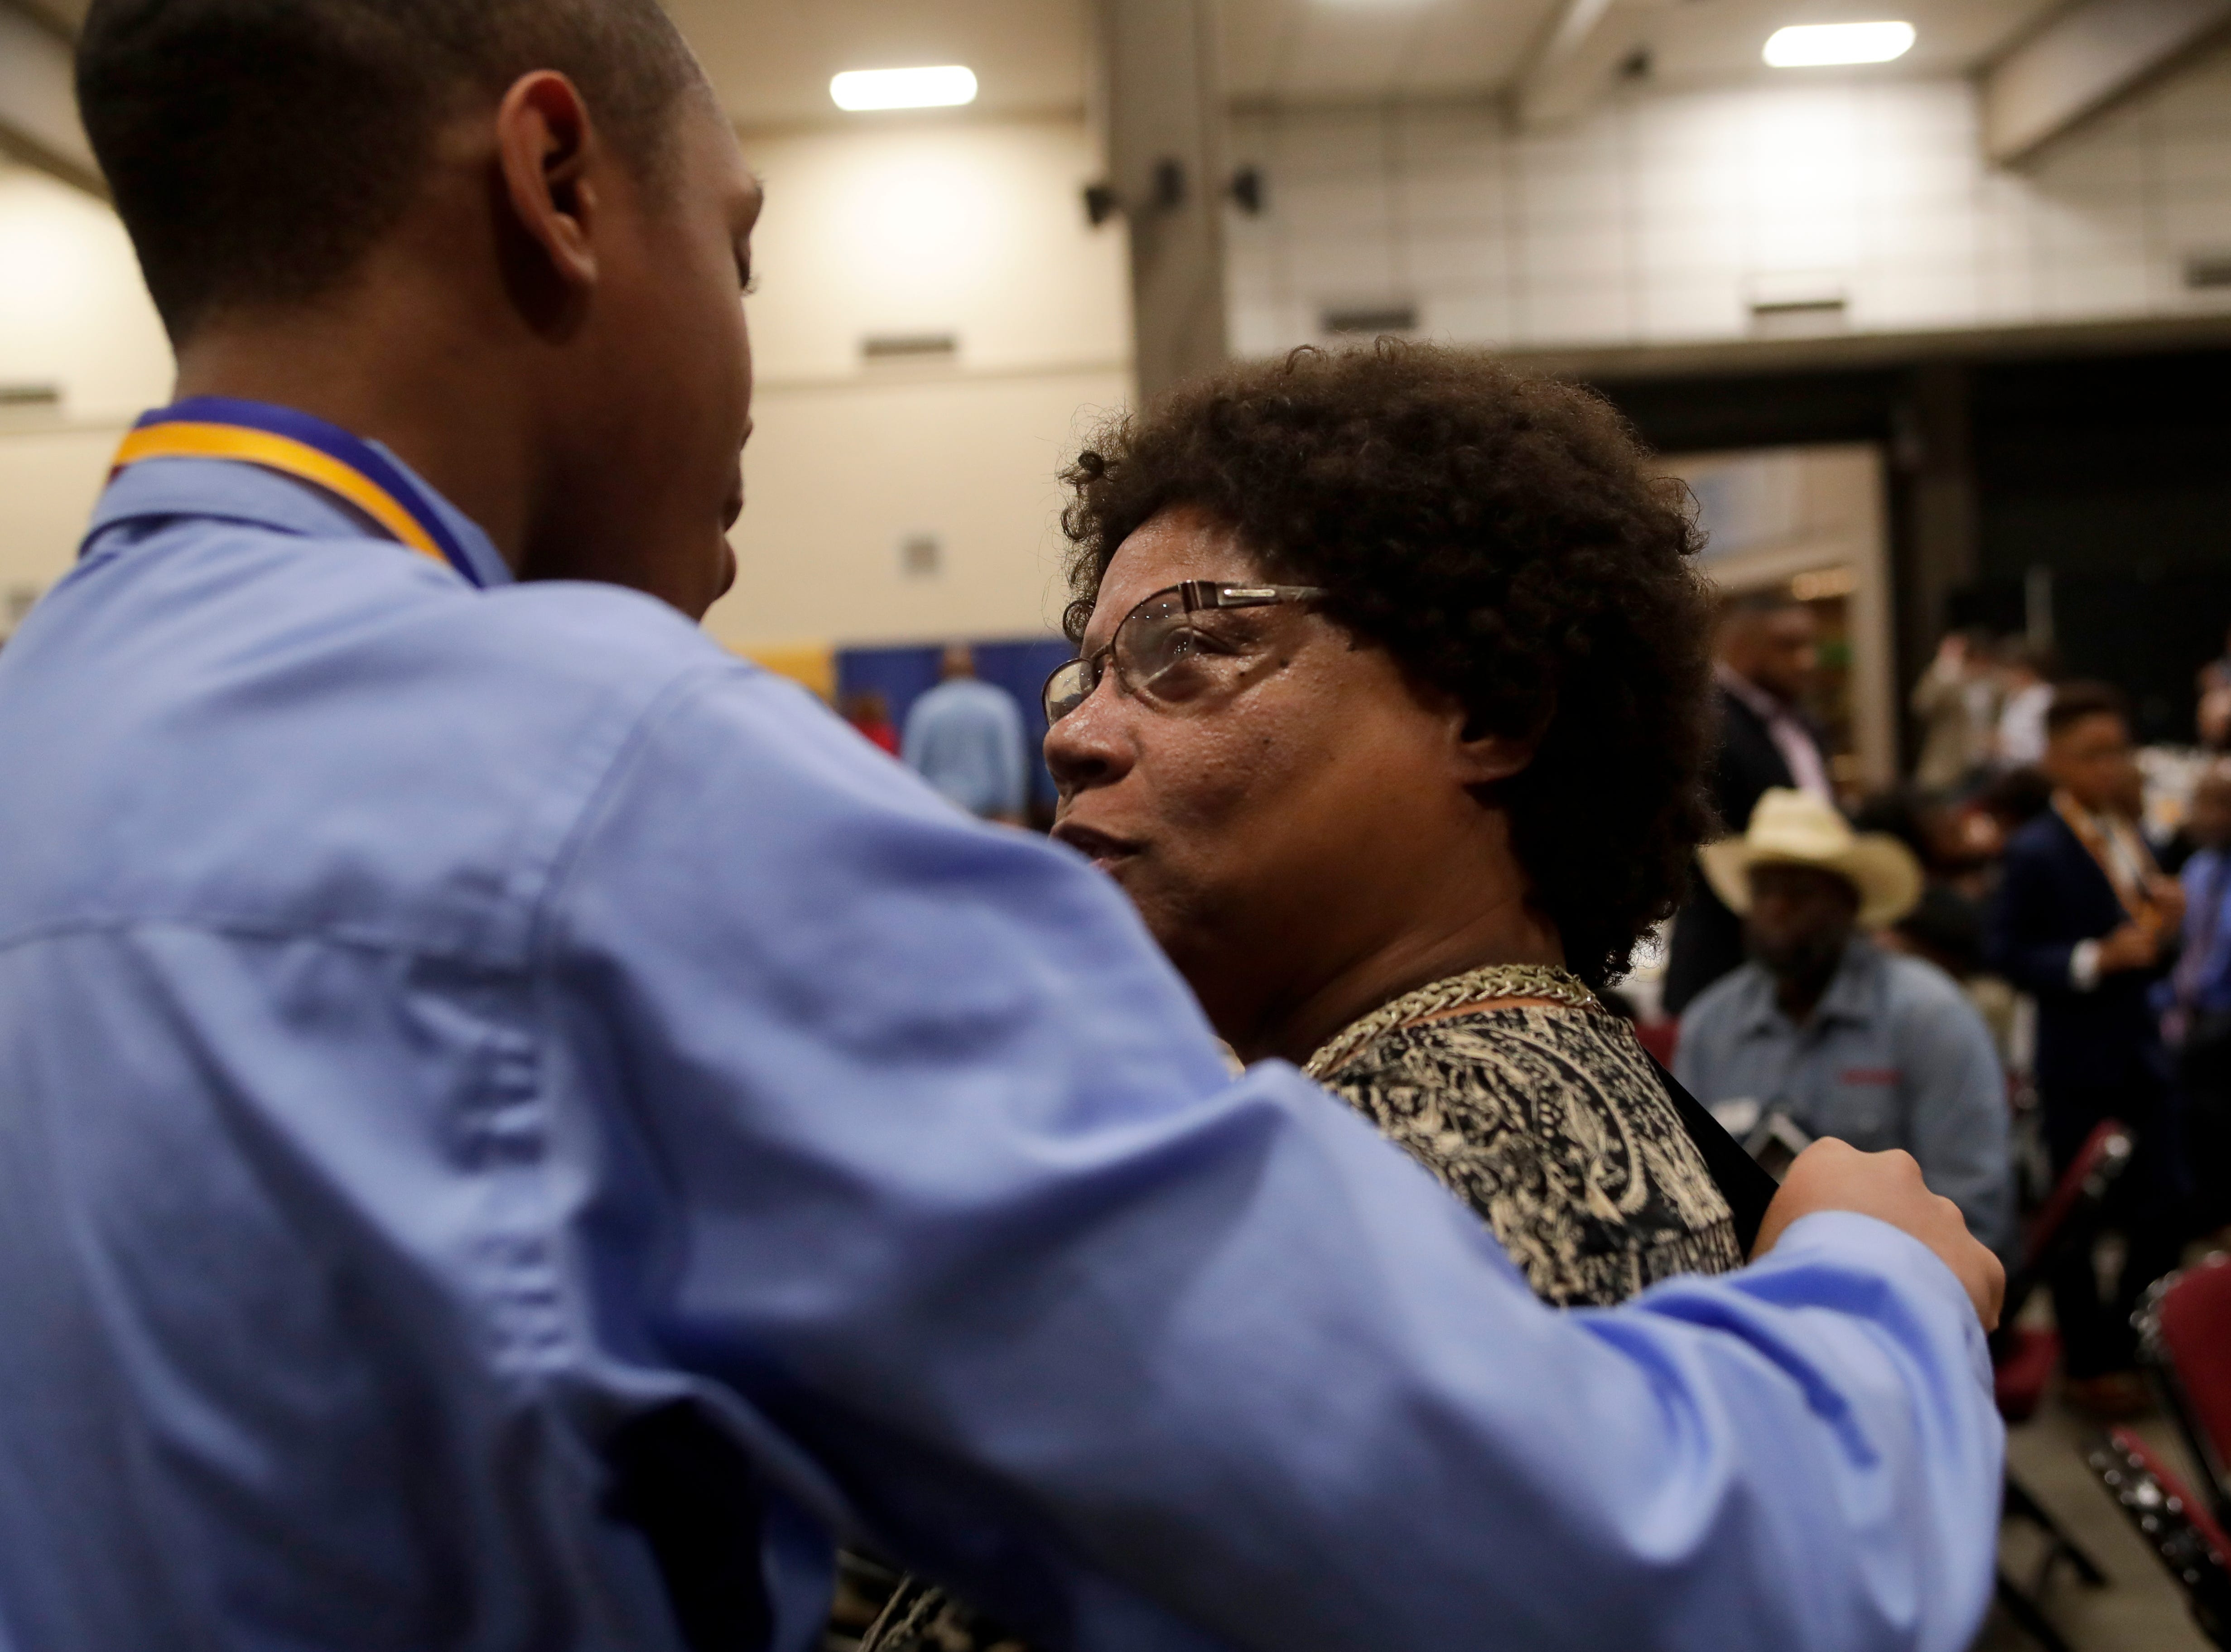 "Dante Dix, 18, a Rickards High School student, is congratulated by his former elementary school teacher Paula Pearcey after he received a medal during the Martin Luther King Jr. commemorative breakfast held at the Donald L. Tucker Civic Center Friday, Jan. 18, 2019. Leon County School students were given medals in recognition for being ""Dreamers and Doers."""